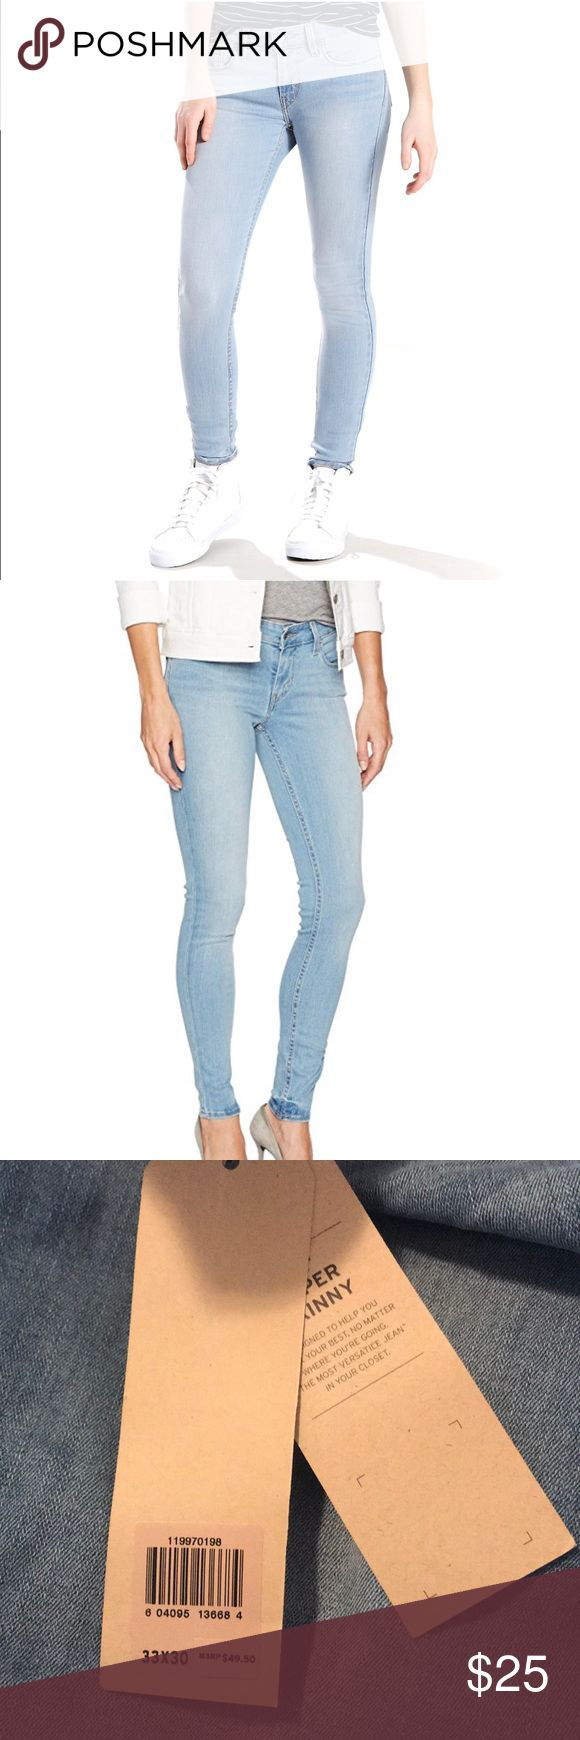 Levi's 535 Super Stretch Jeans: Light Wash Denim NWT Mid Rise Slim Throughout Hip & Thigh 33x30 Levi's Jeans Skinny